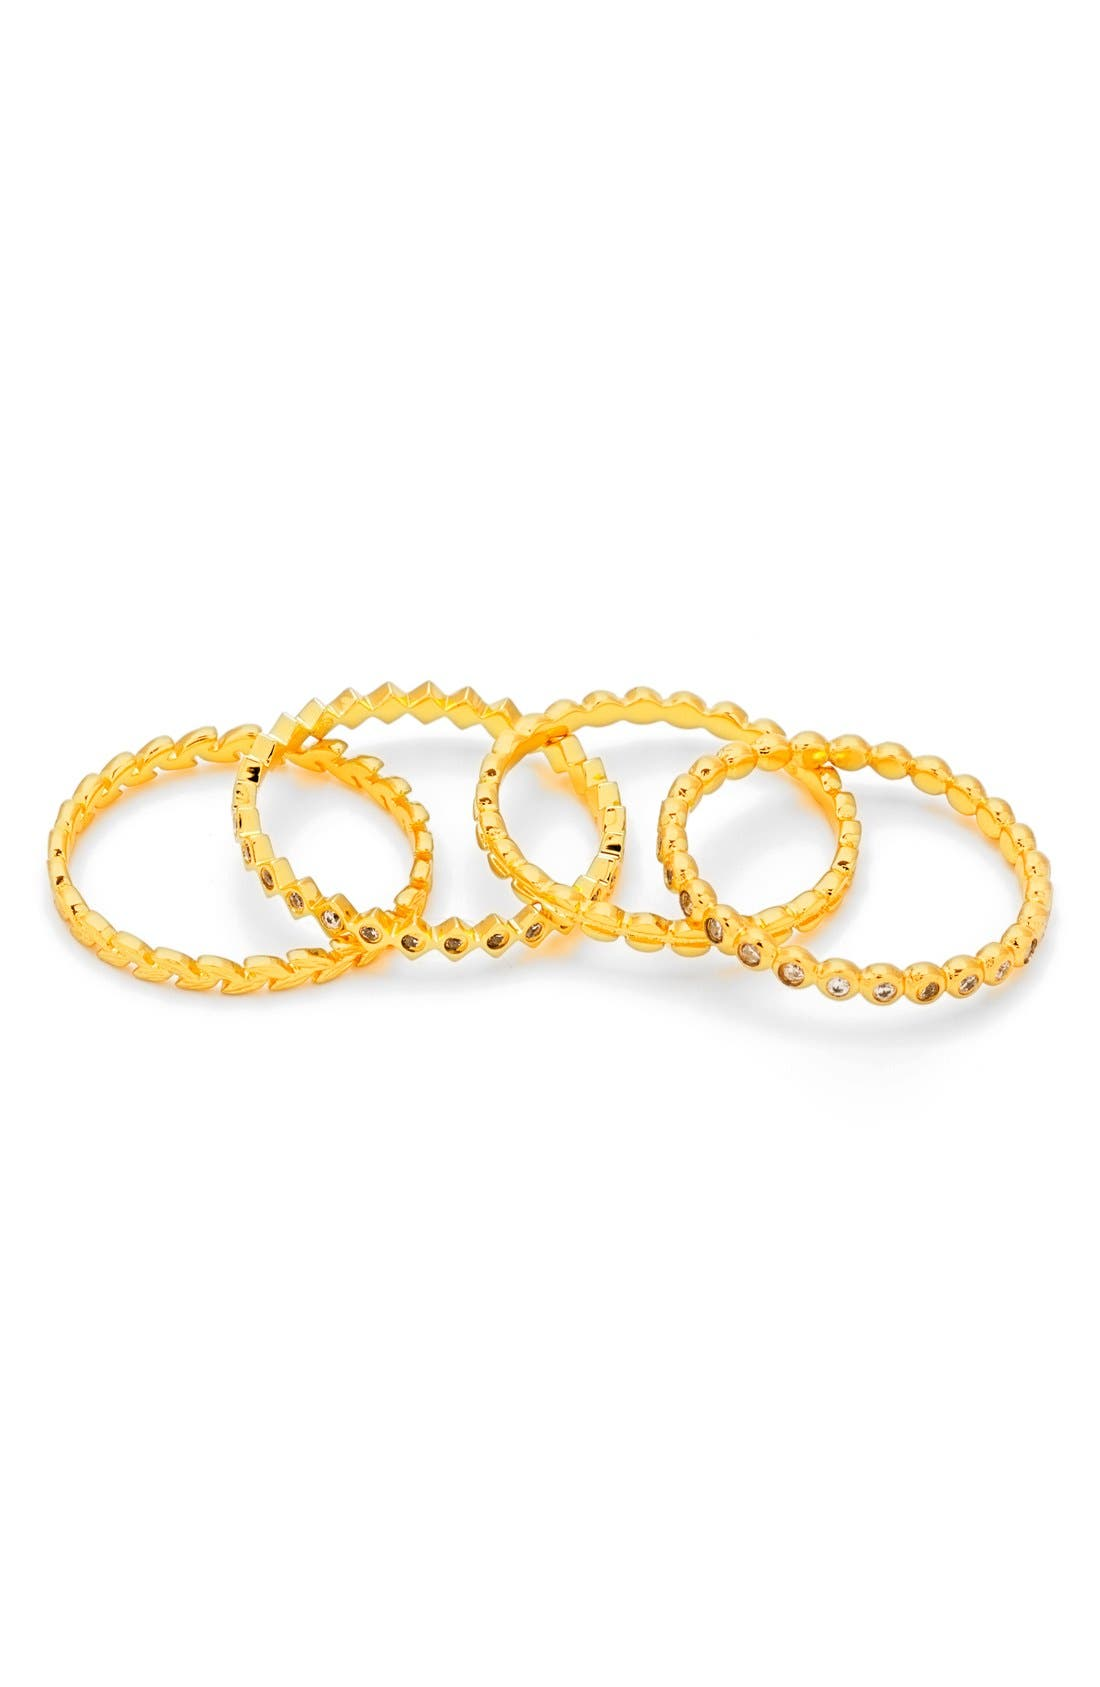 Stackable Set of 4 Band Rings,                             Alternate thumbnail 3, color,                             710